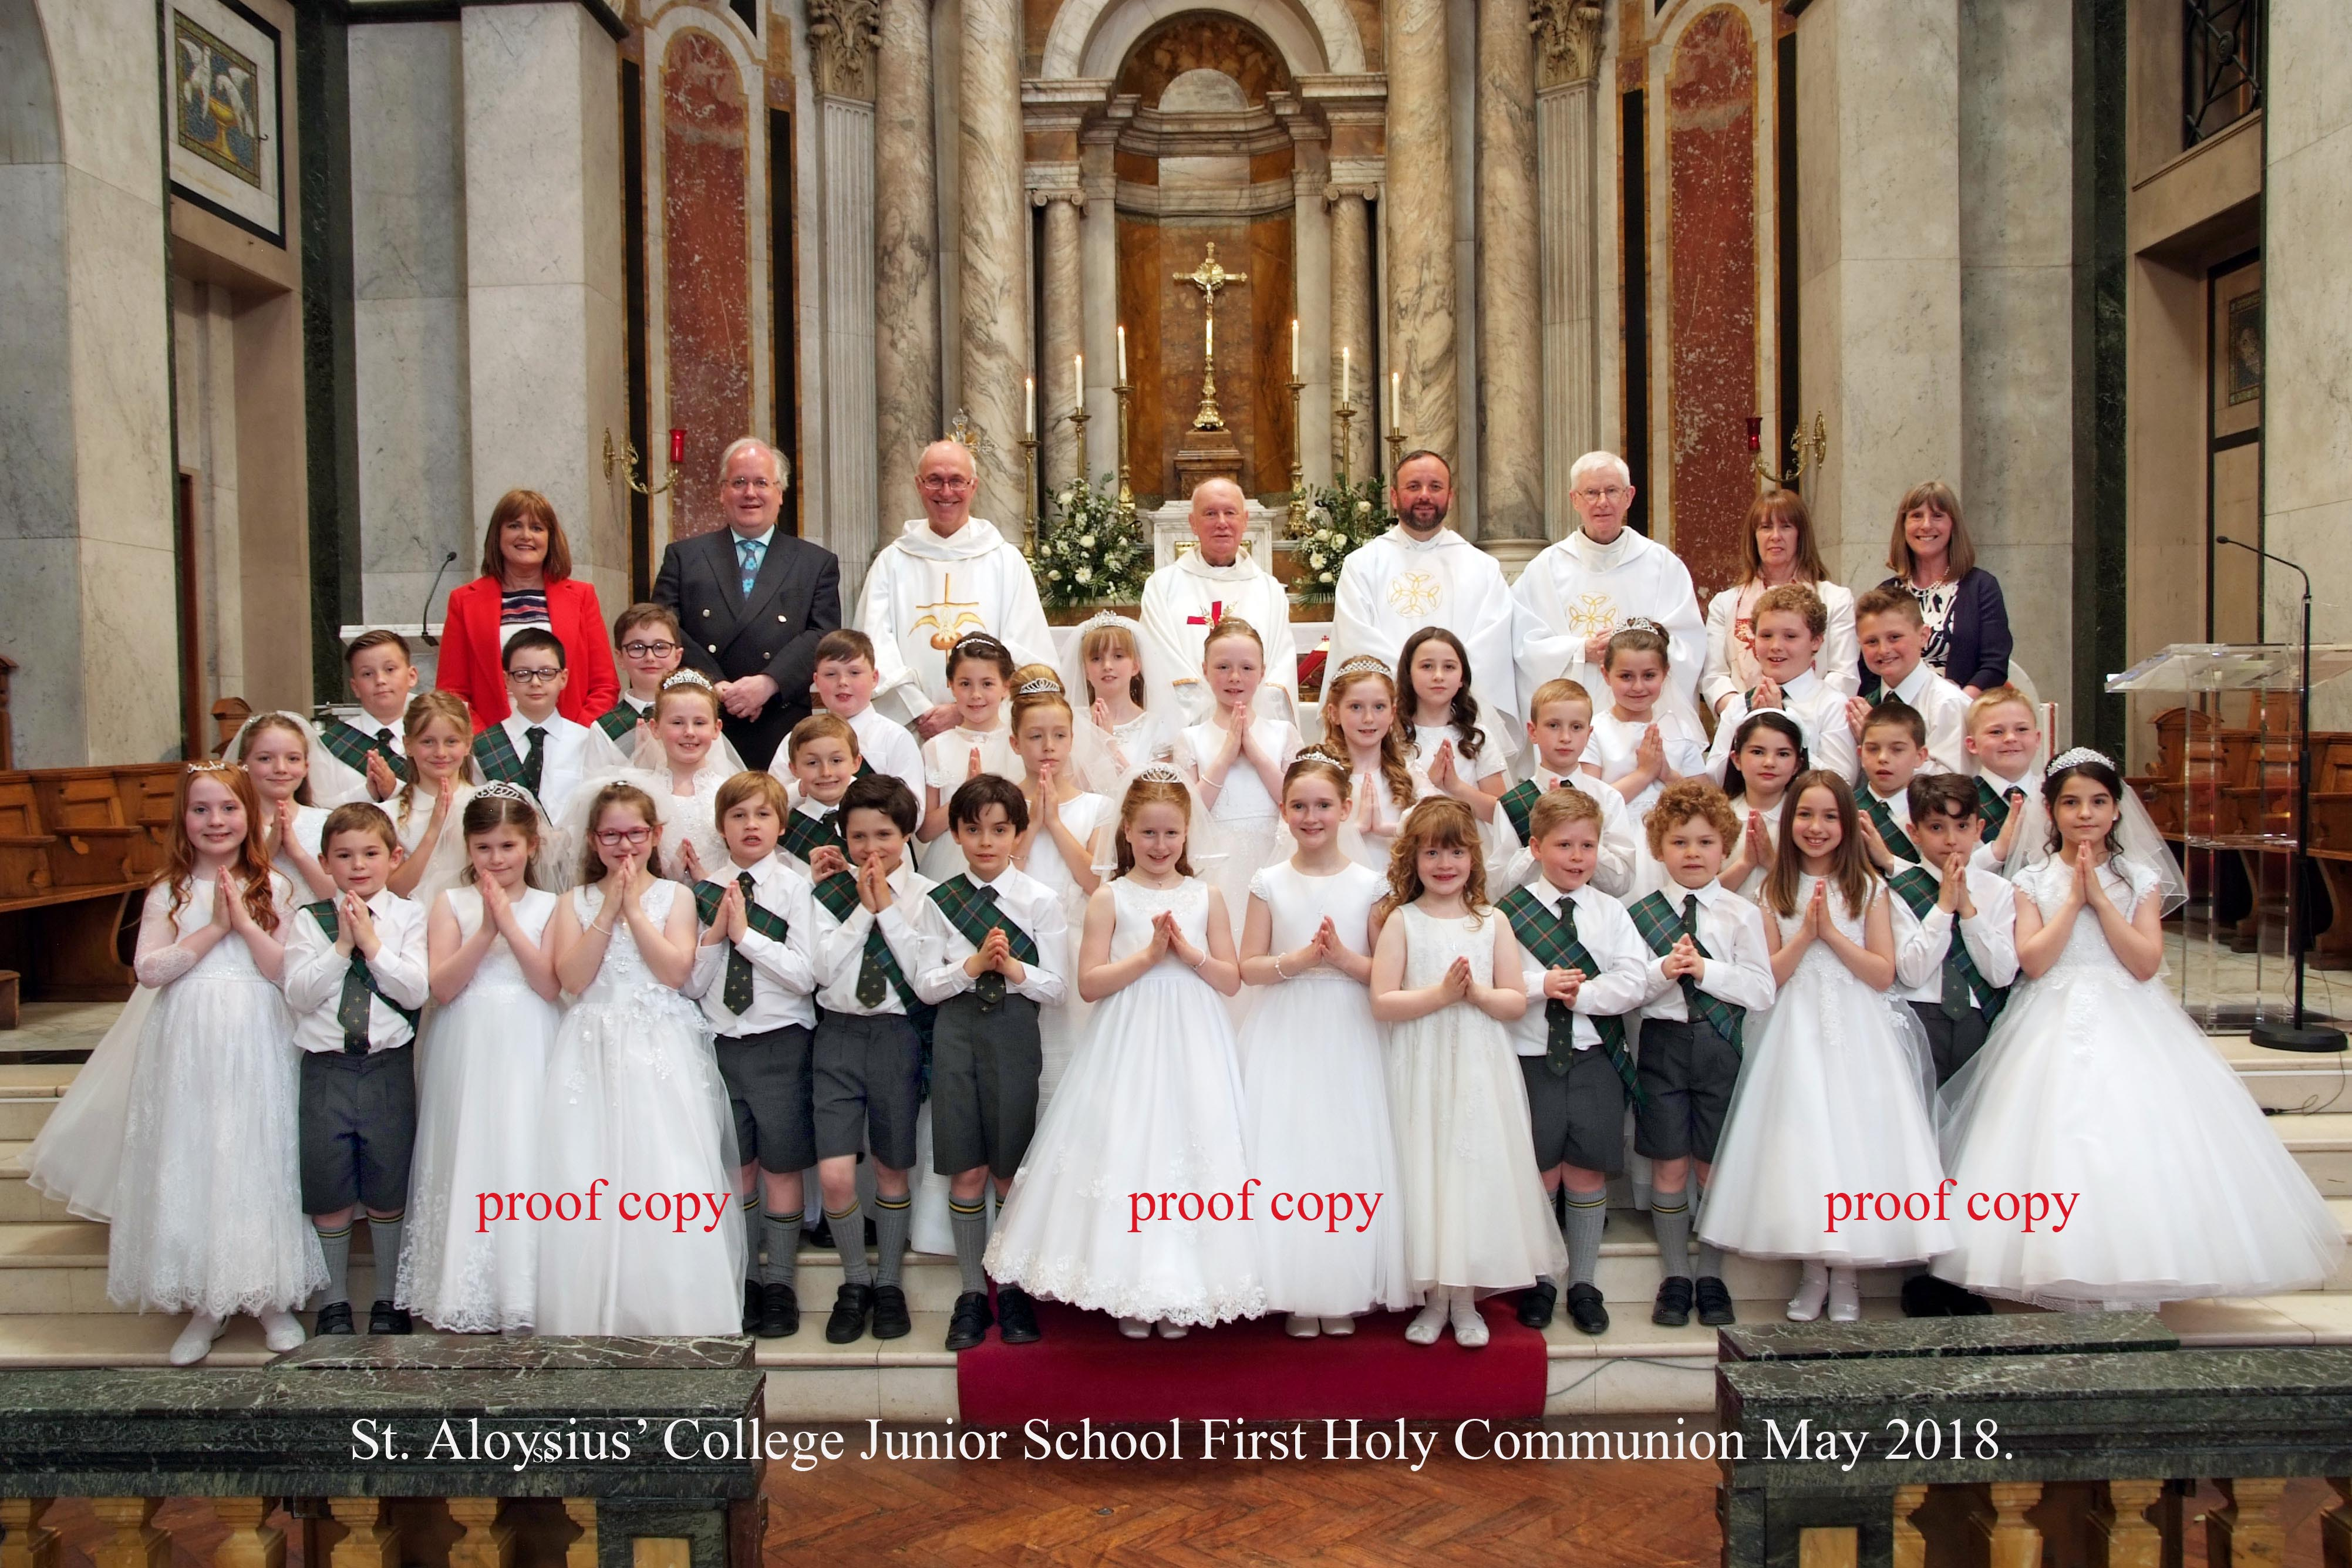 First Holy Communion Photo Proof 2018